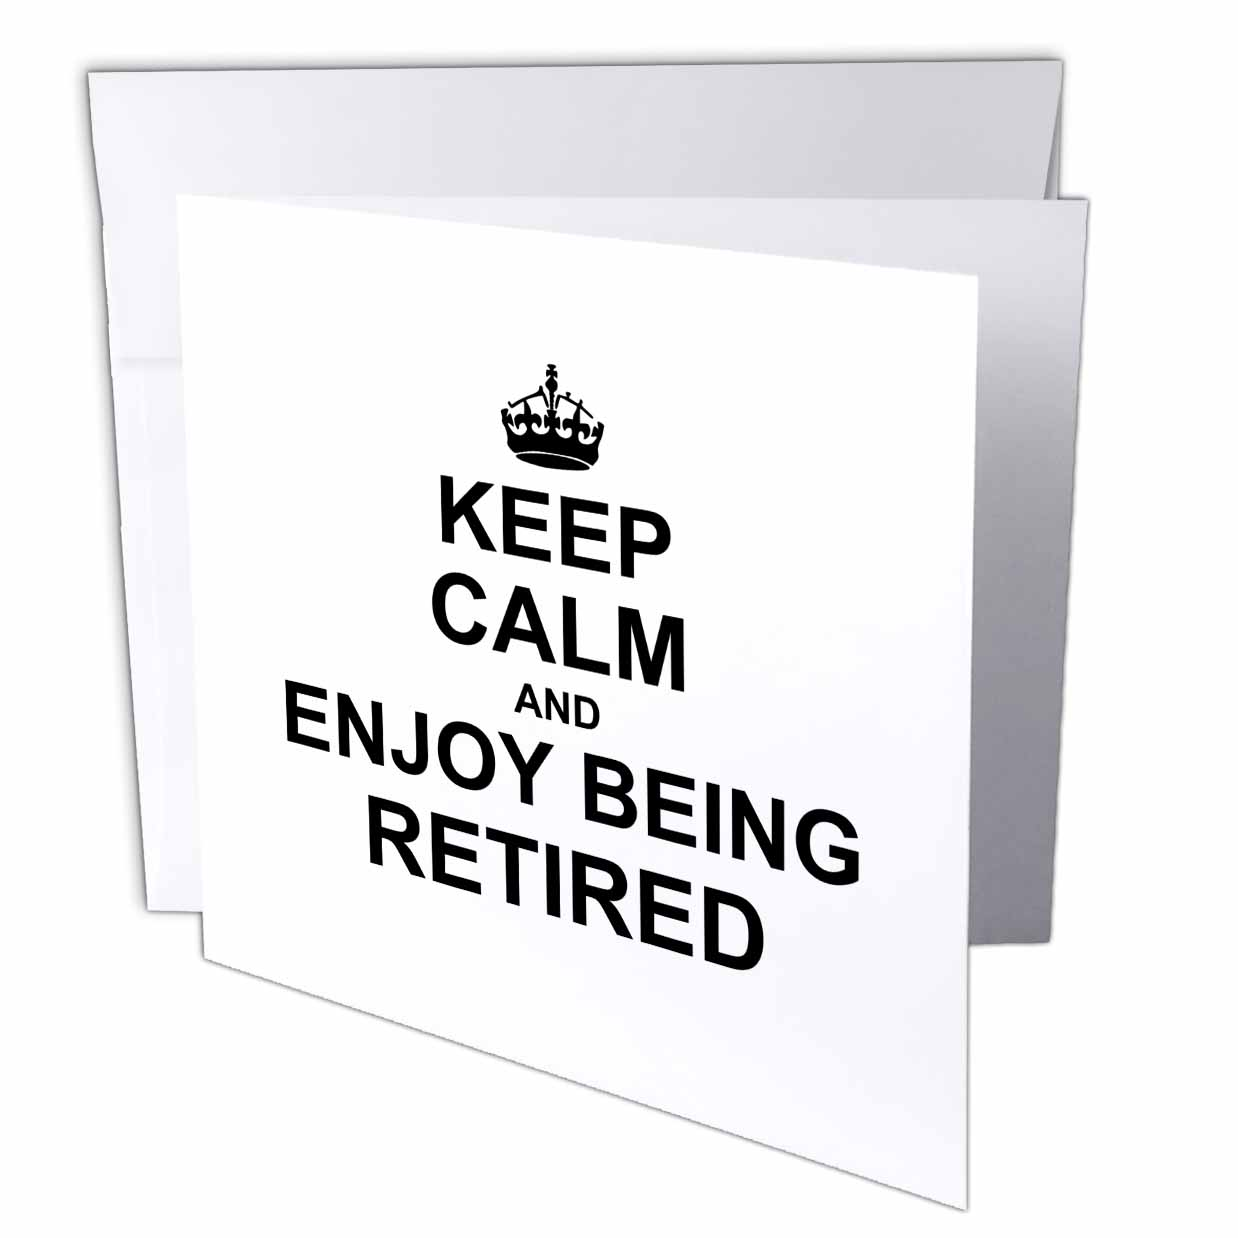 3dRose Keep Calm and Enjoy being Retired. fun carry on themed Retirement gift, Greeting Card, 6 x 6 inches, single